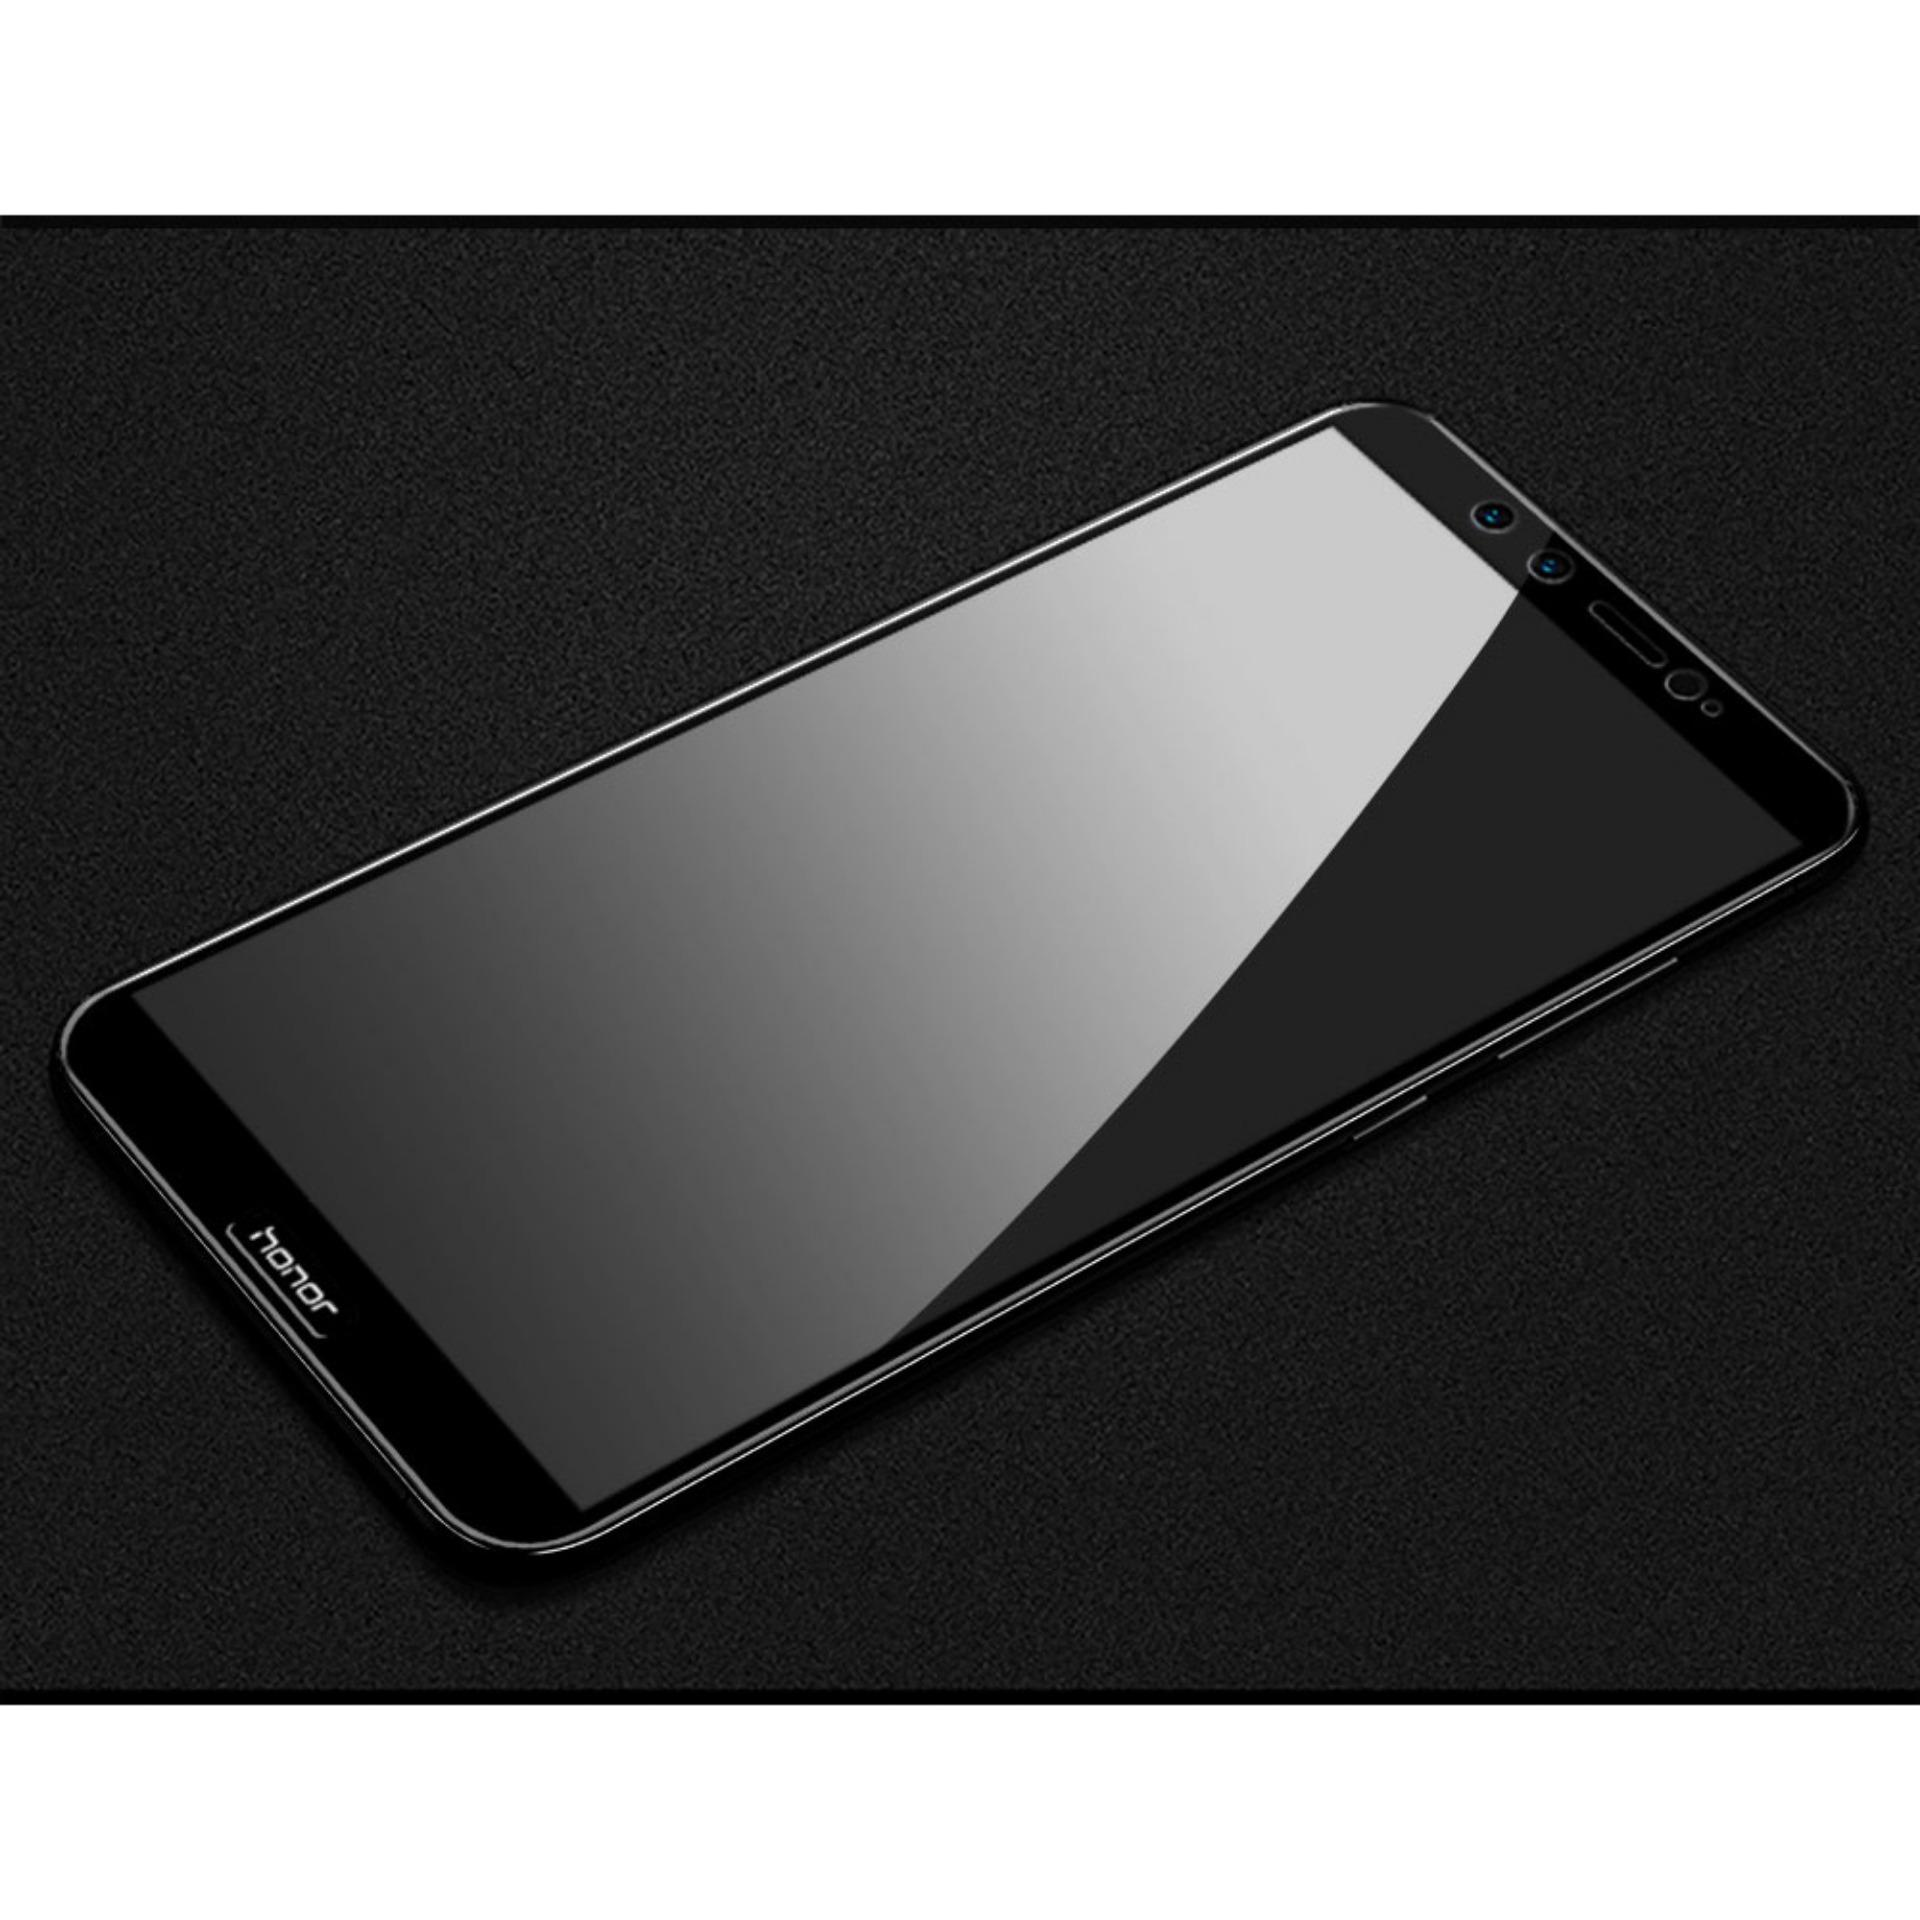 Detail Gambar Full Cover Tempered Glass 5D Screen Protector Huawei Honor 9 Lite - Hitam Terbaru